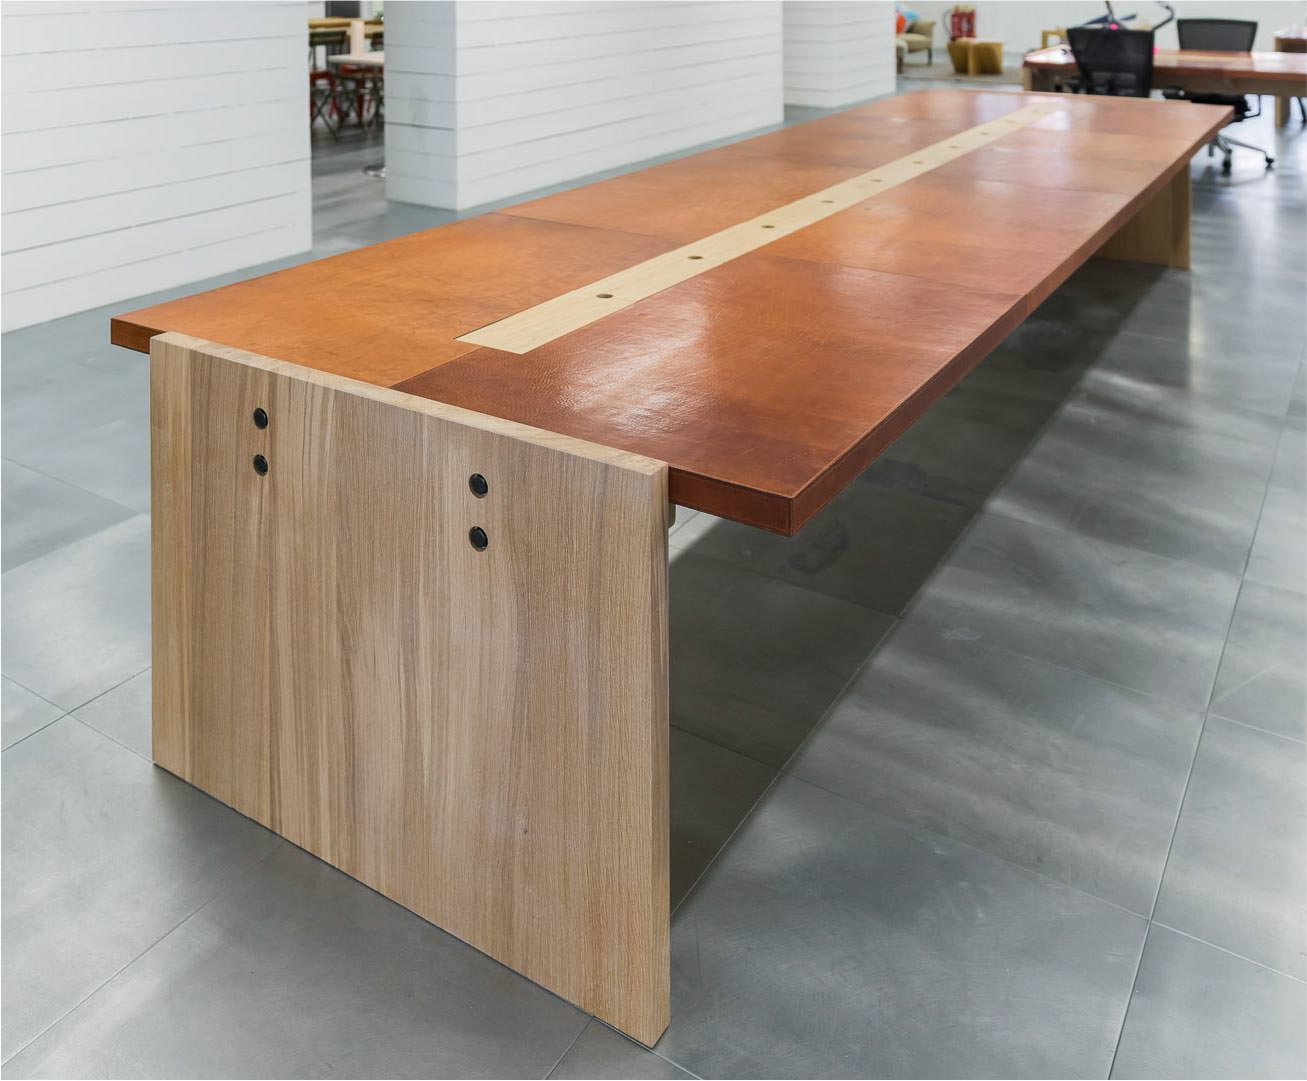 Vegetable tanned leather top workstation table